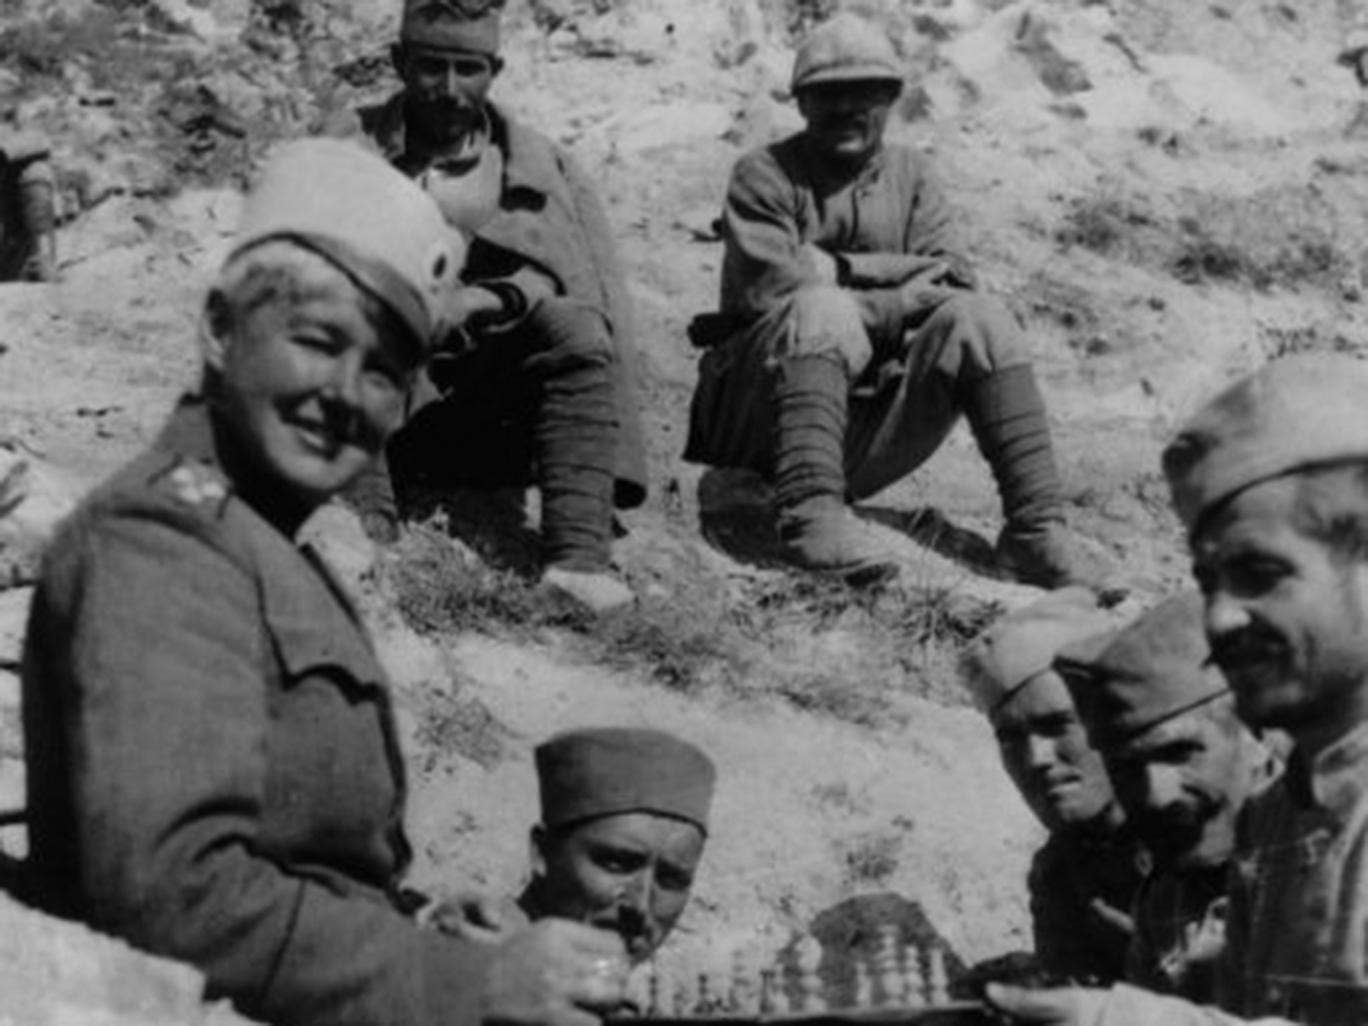 Flora Sandes, who rose from private to sergeant-major in the Serbian army, playing chess with her Serbian comrades. After the war ended, she was promoted to lieutenant